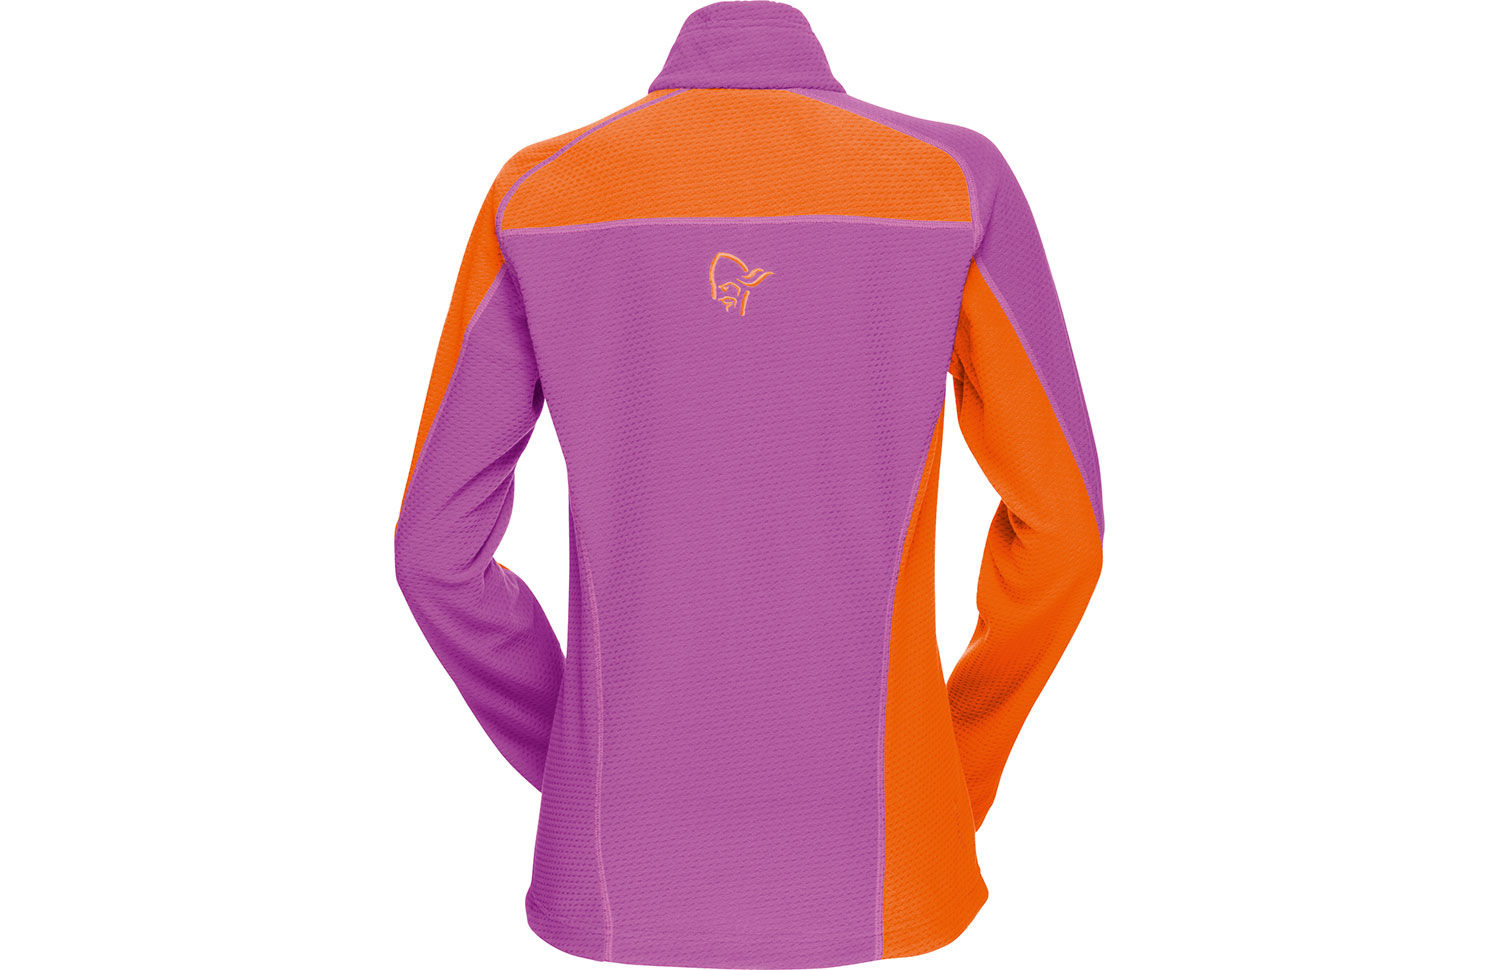 Woman fleece jacket - Warm1 fleece by Norrona